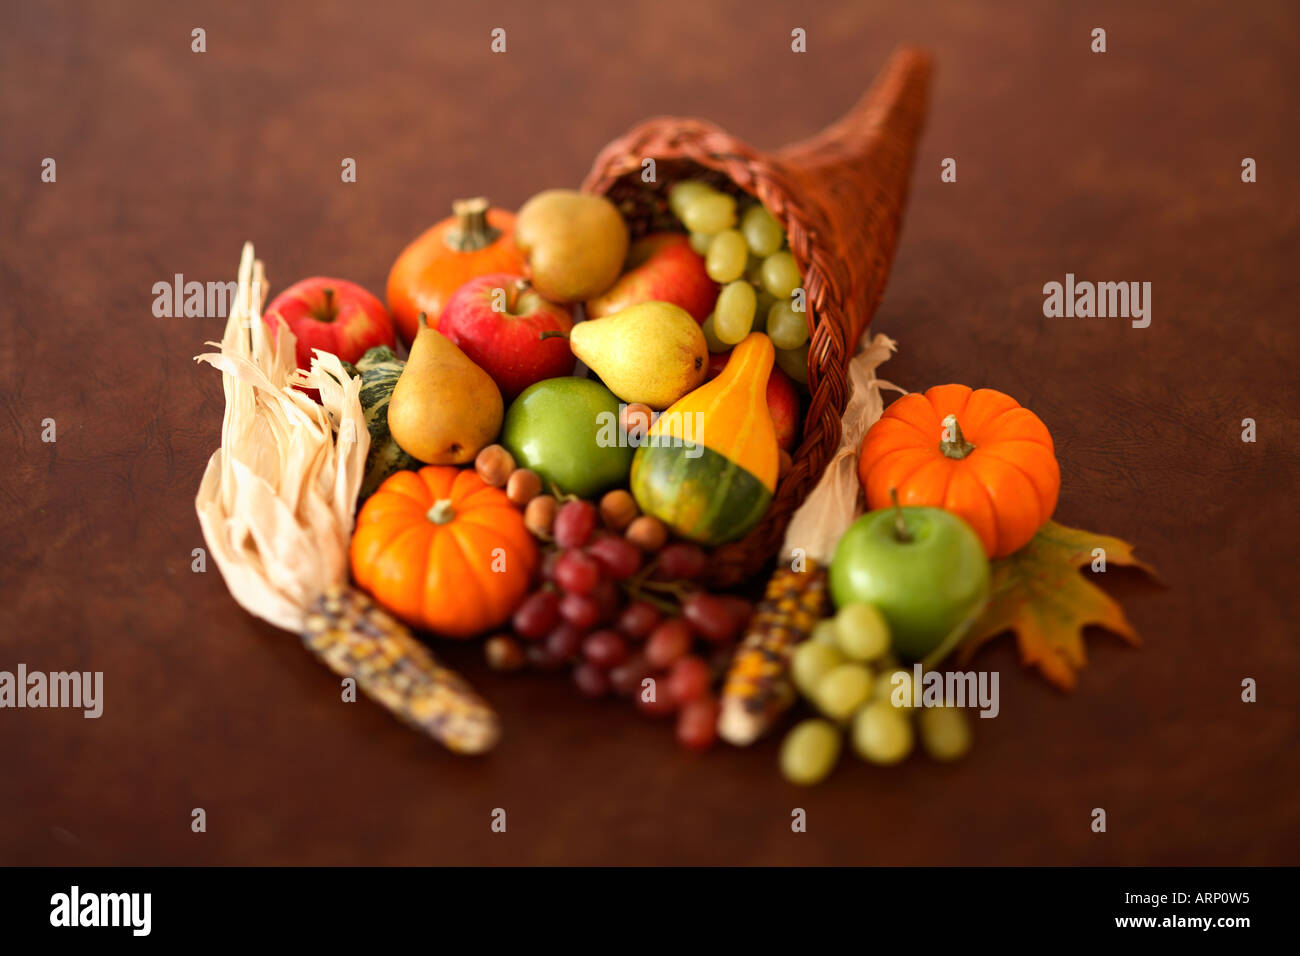 Cornucopia Filled with Fruits and Vegetables - Stock Image